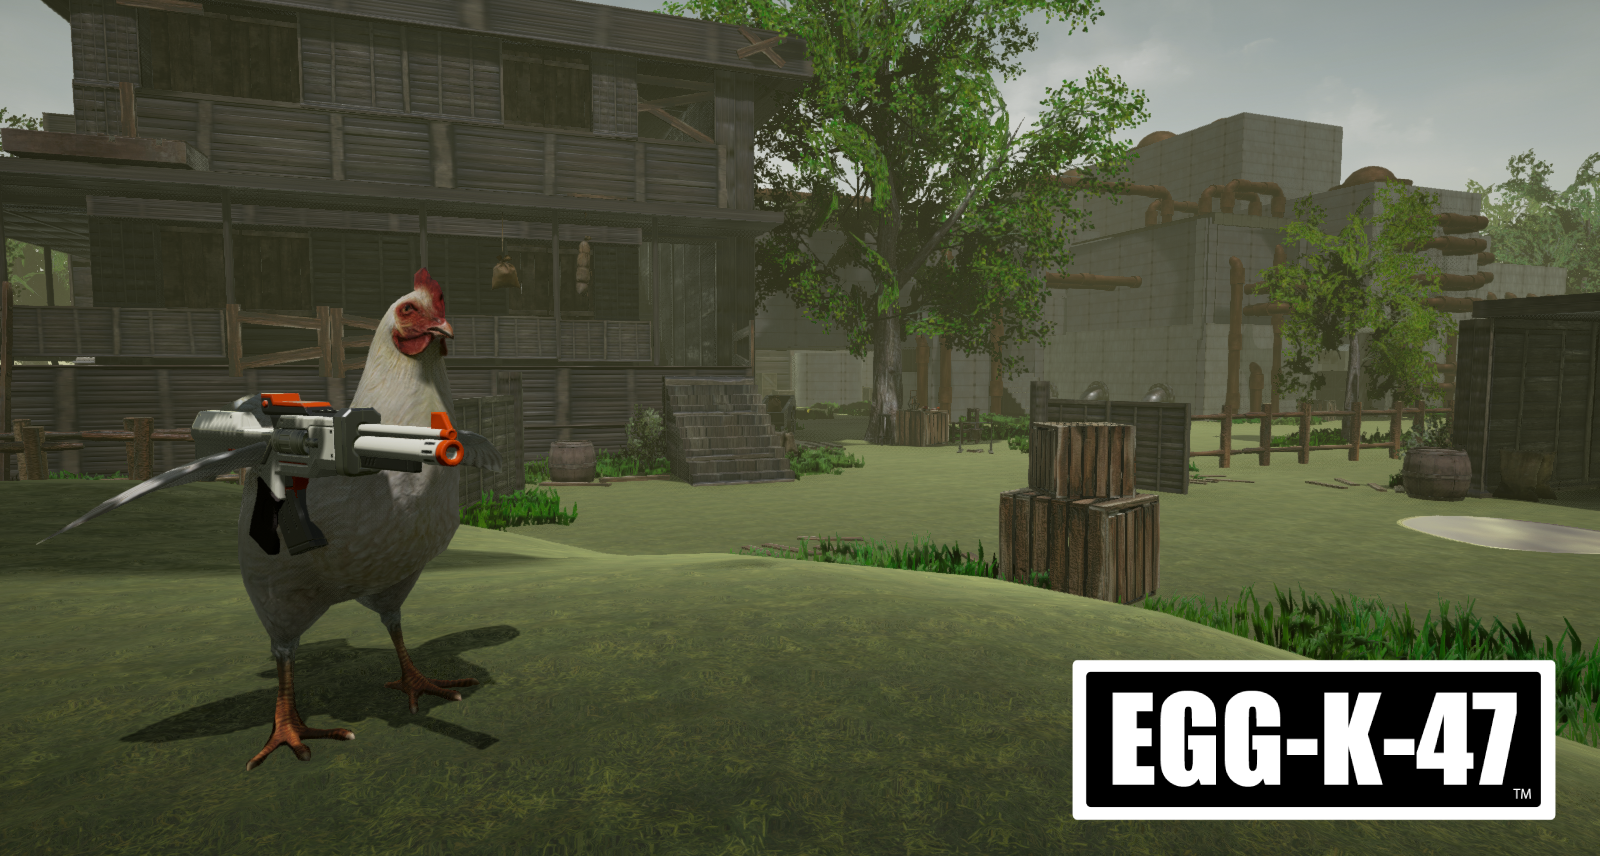 eggk47-screenshot-2